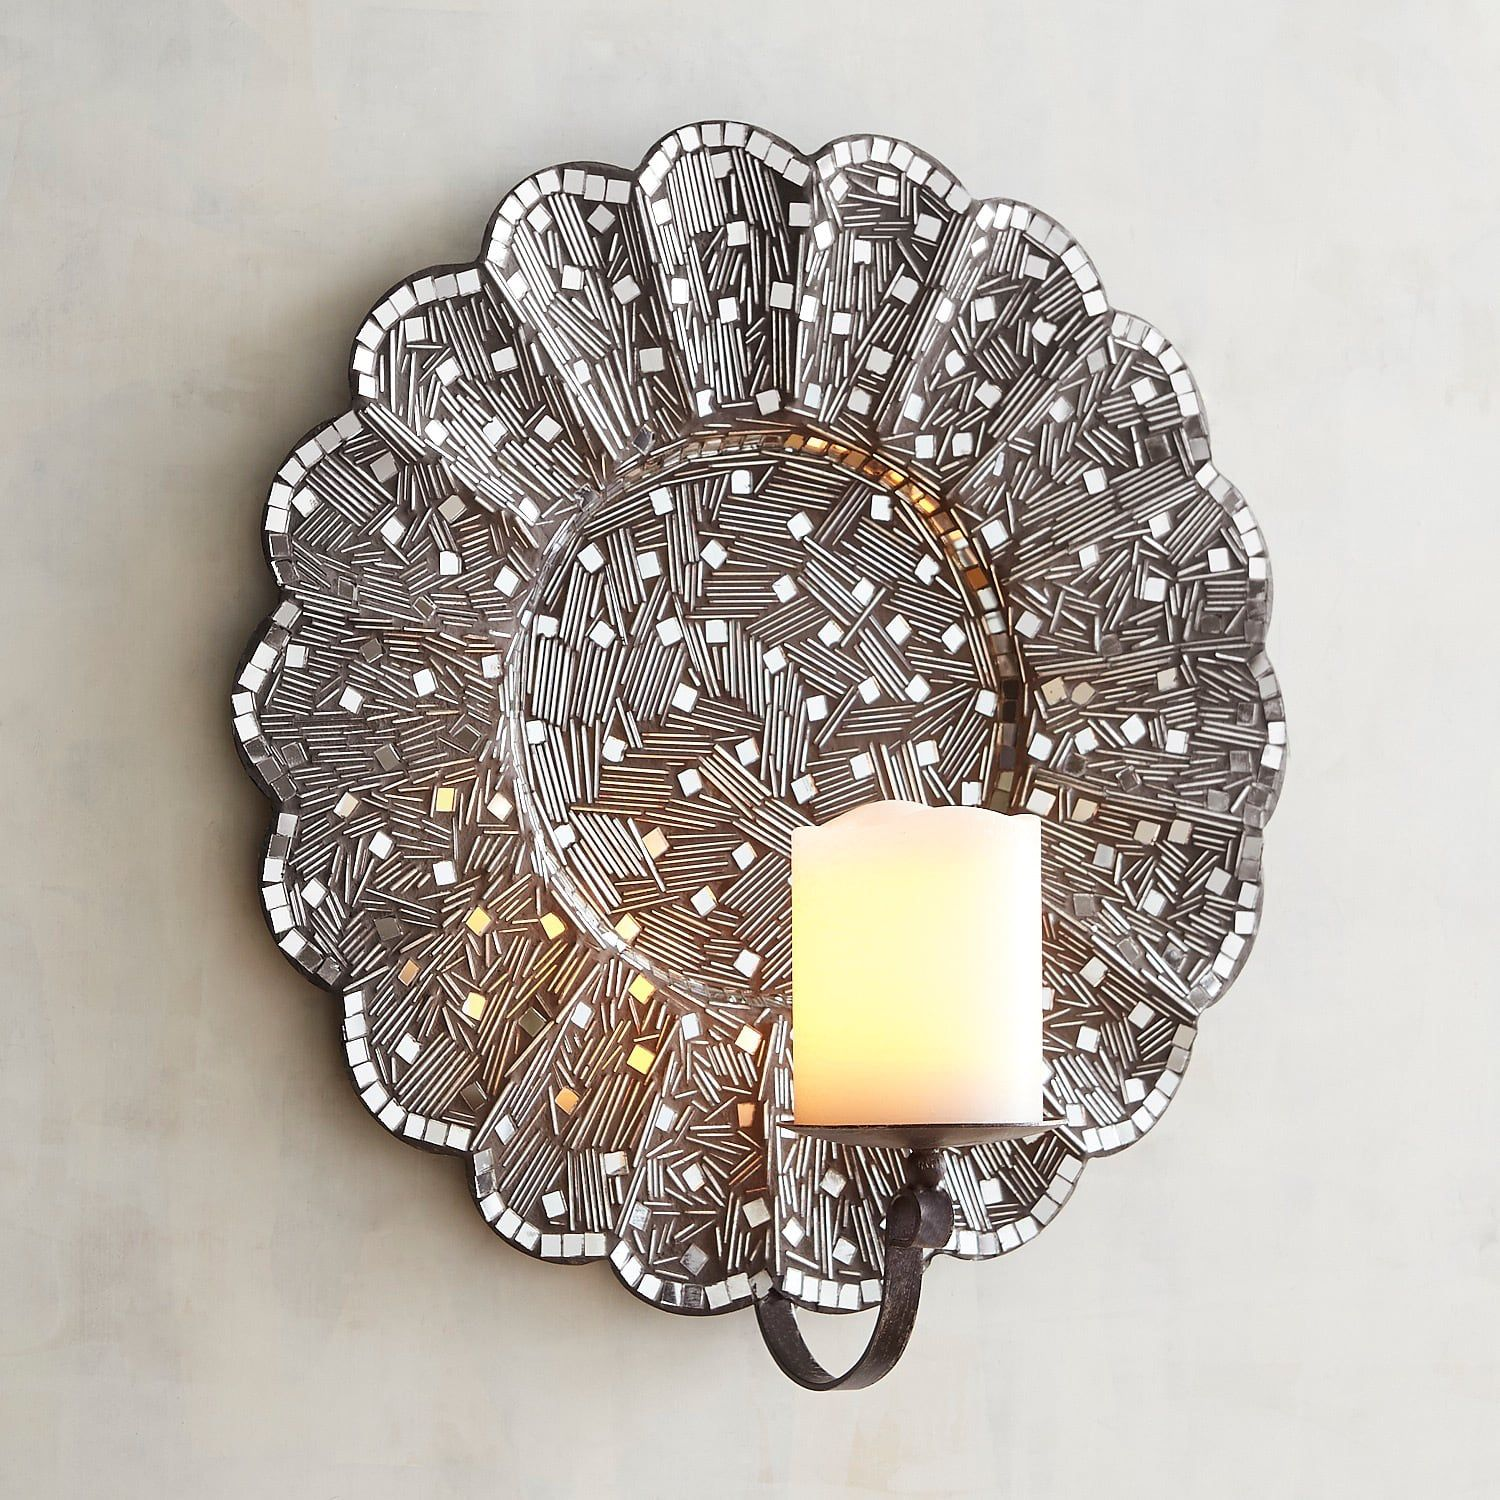 Silver Mosaic Flower Candle Wall Sconce Flower Candle Mosaic